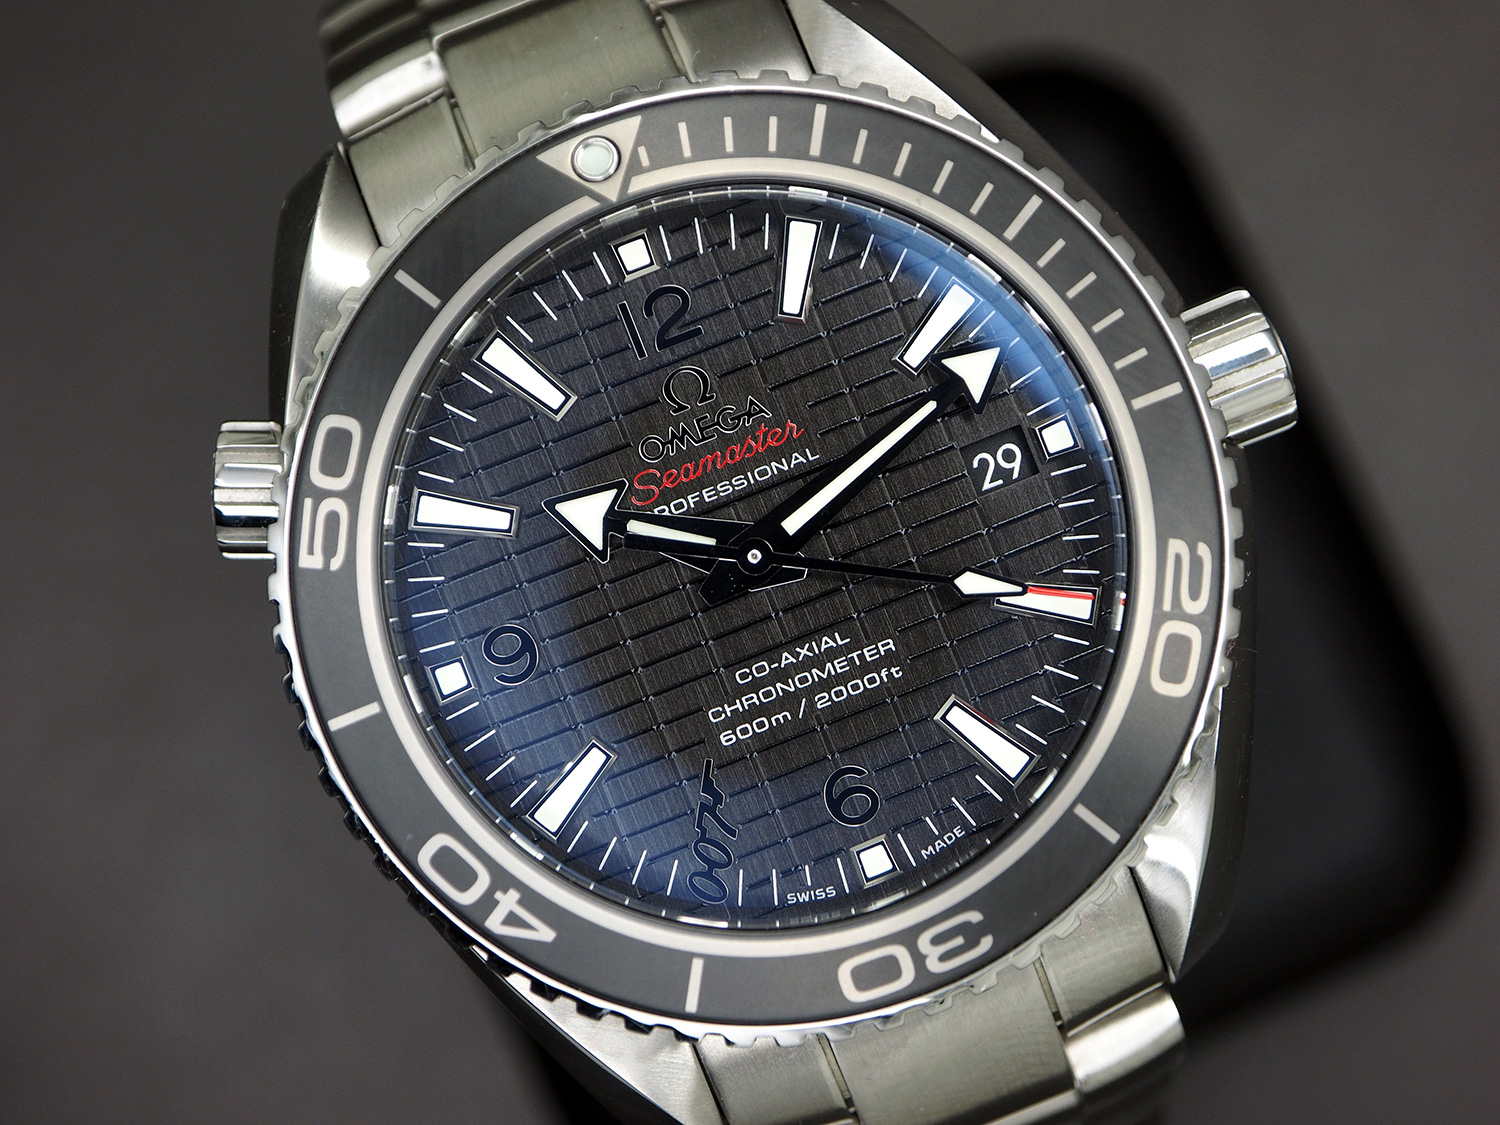 Omega Seamaster Planet Ocean Automatic Black Ceramic 42 mm 007 SKYFALL Limited Edition 6